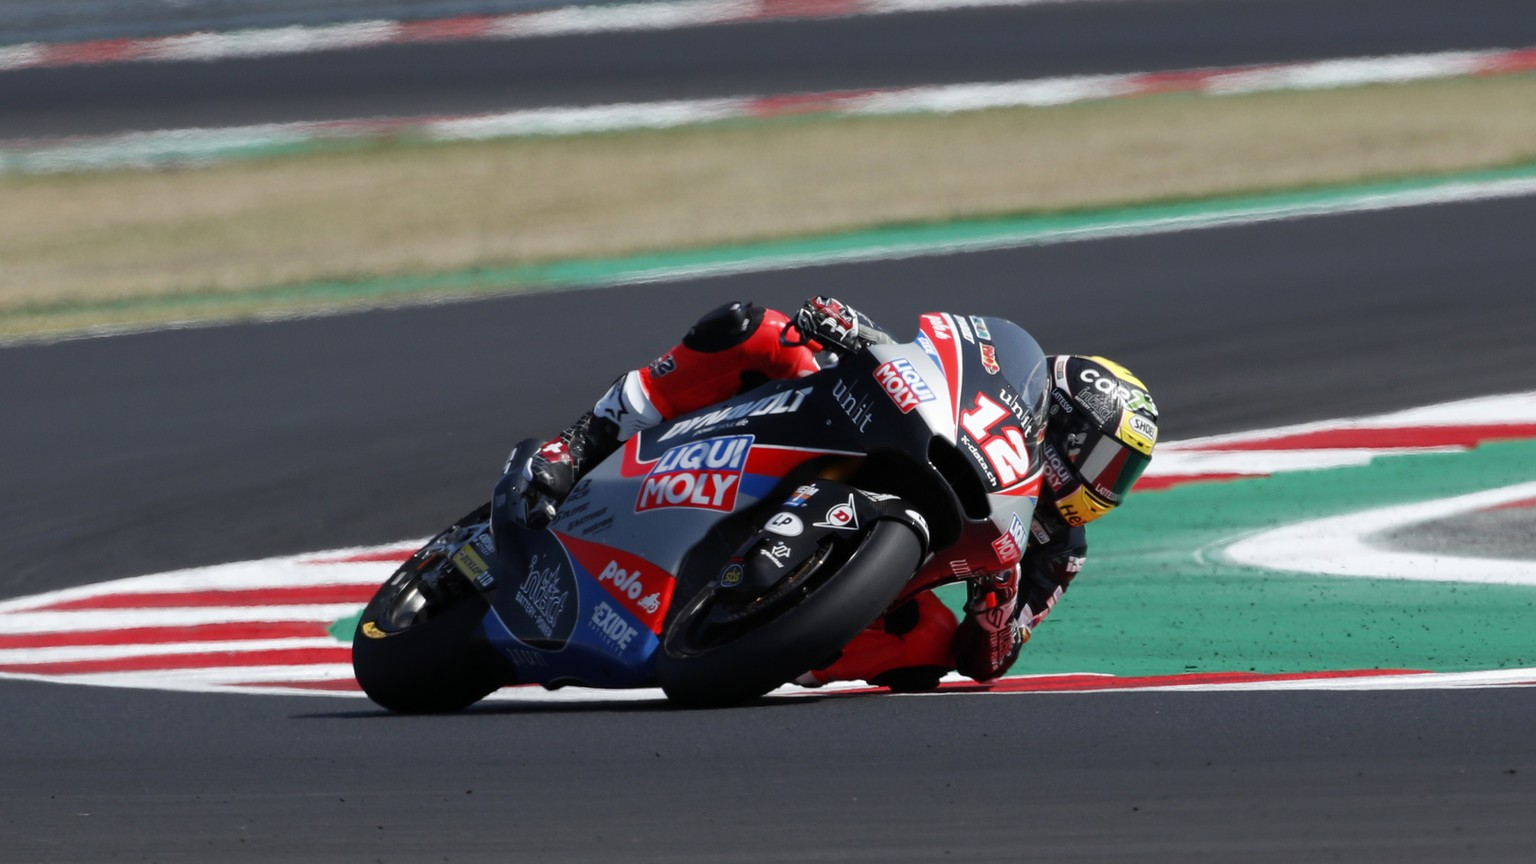 Moto2 rider Thomas Luthi of Switzerland takes a curve during the San Marino Motorcycle Grand Prix at the Misano circuit in Misano Adriatico, Italy, Sunday, Sept. 13, 2020. (AP Photo/Antonio Calanni)